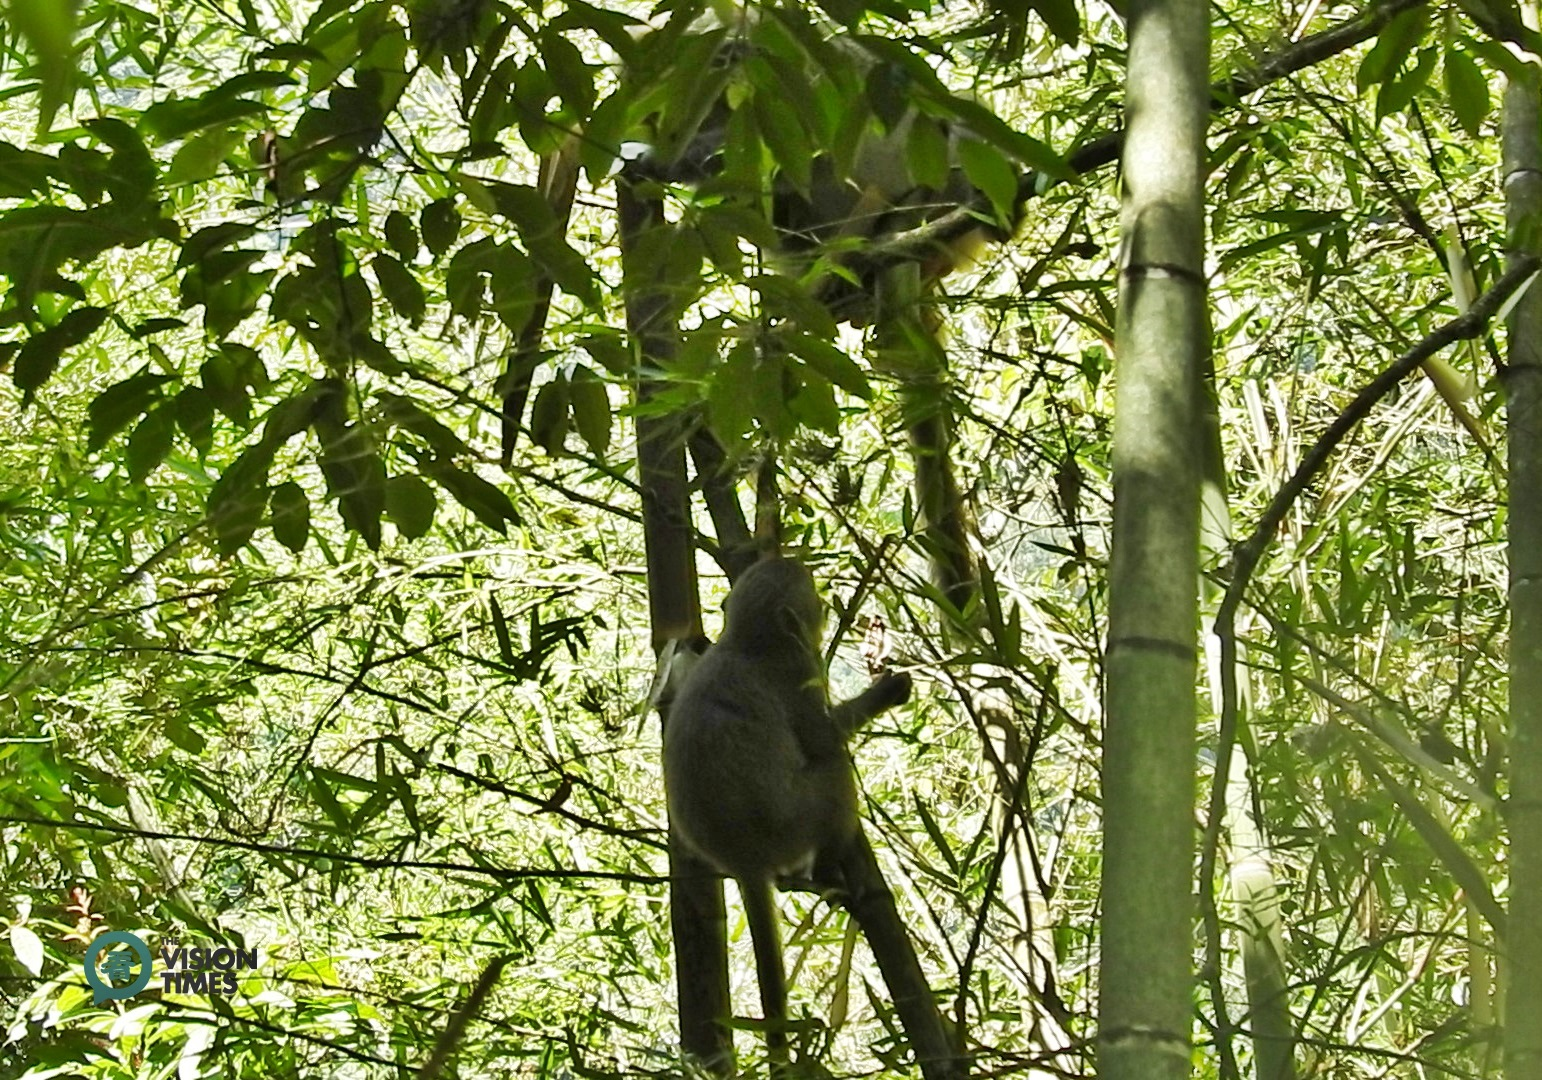 Formosan macaques never fail to find bamboo shoots in the forests around Sun Moon Lake. (Image: Billy Shyu / Vision Times)